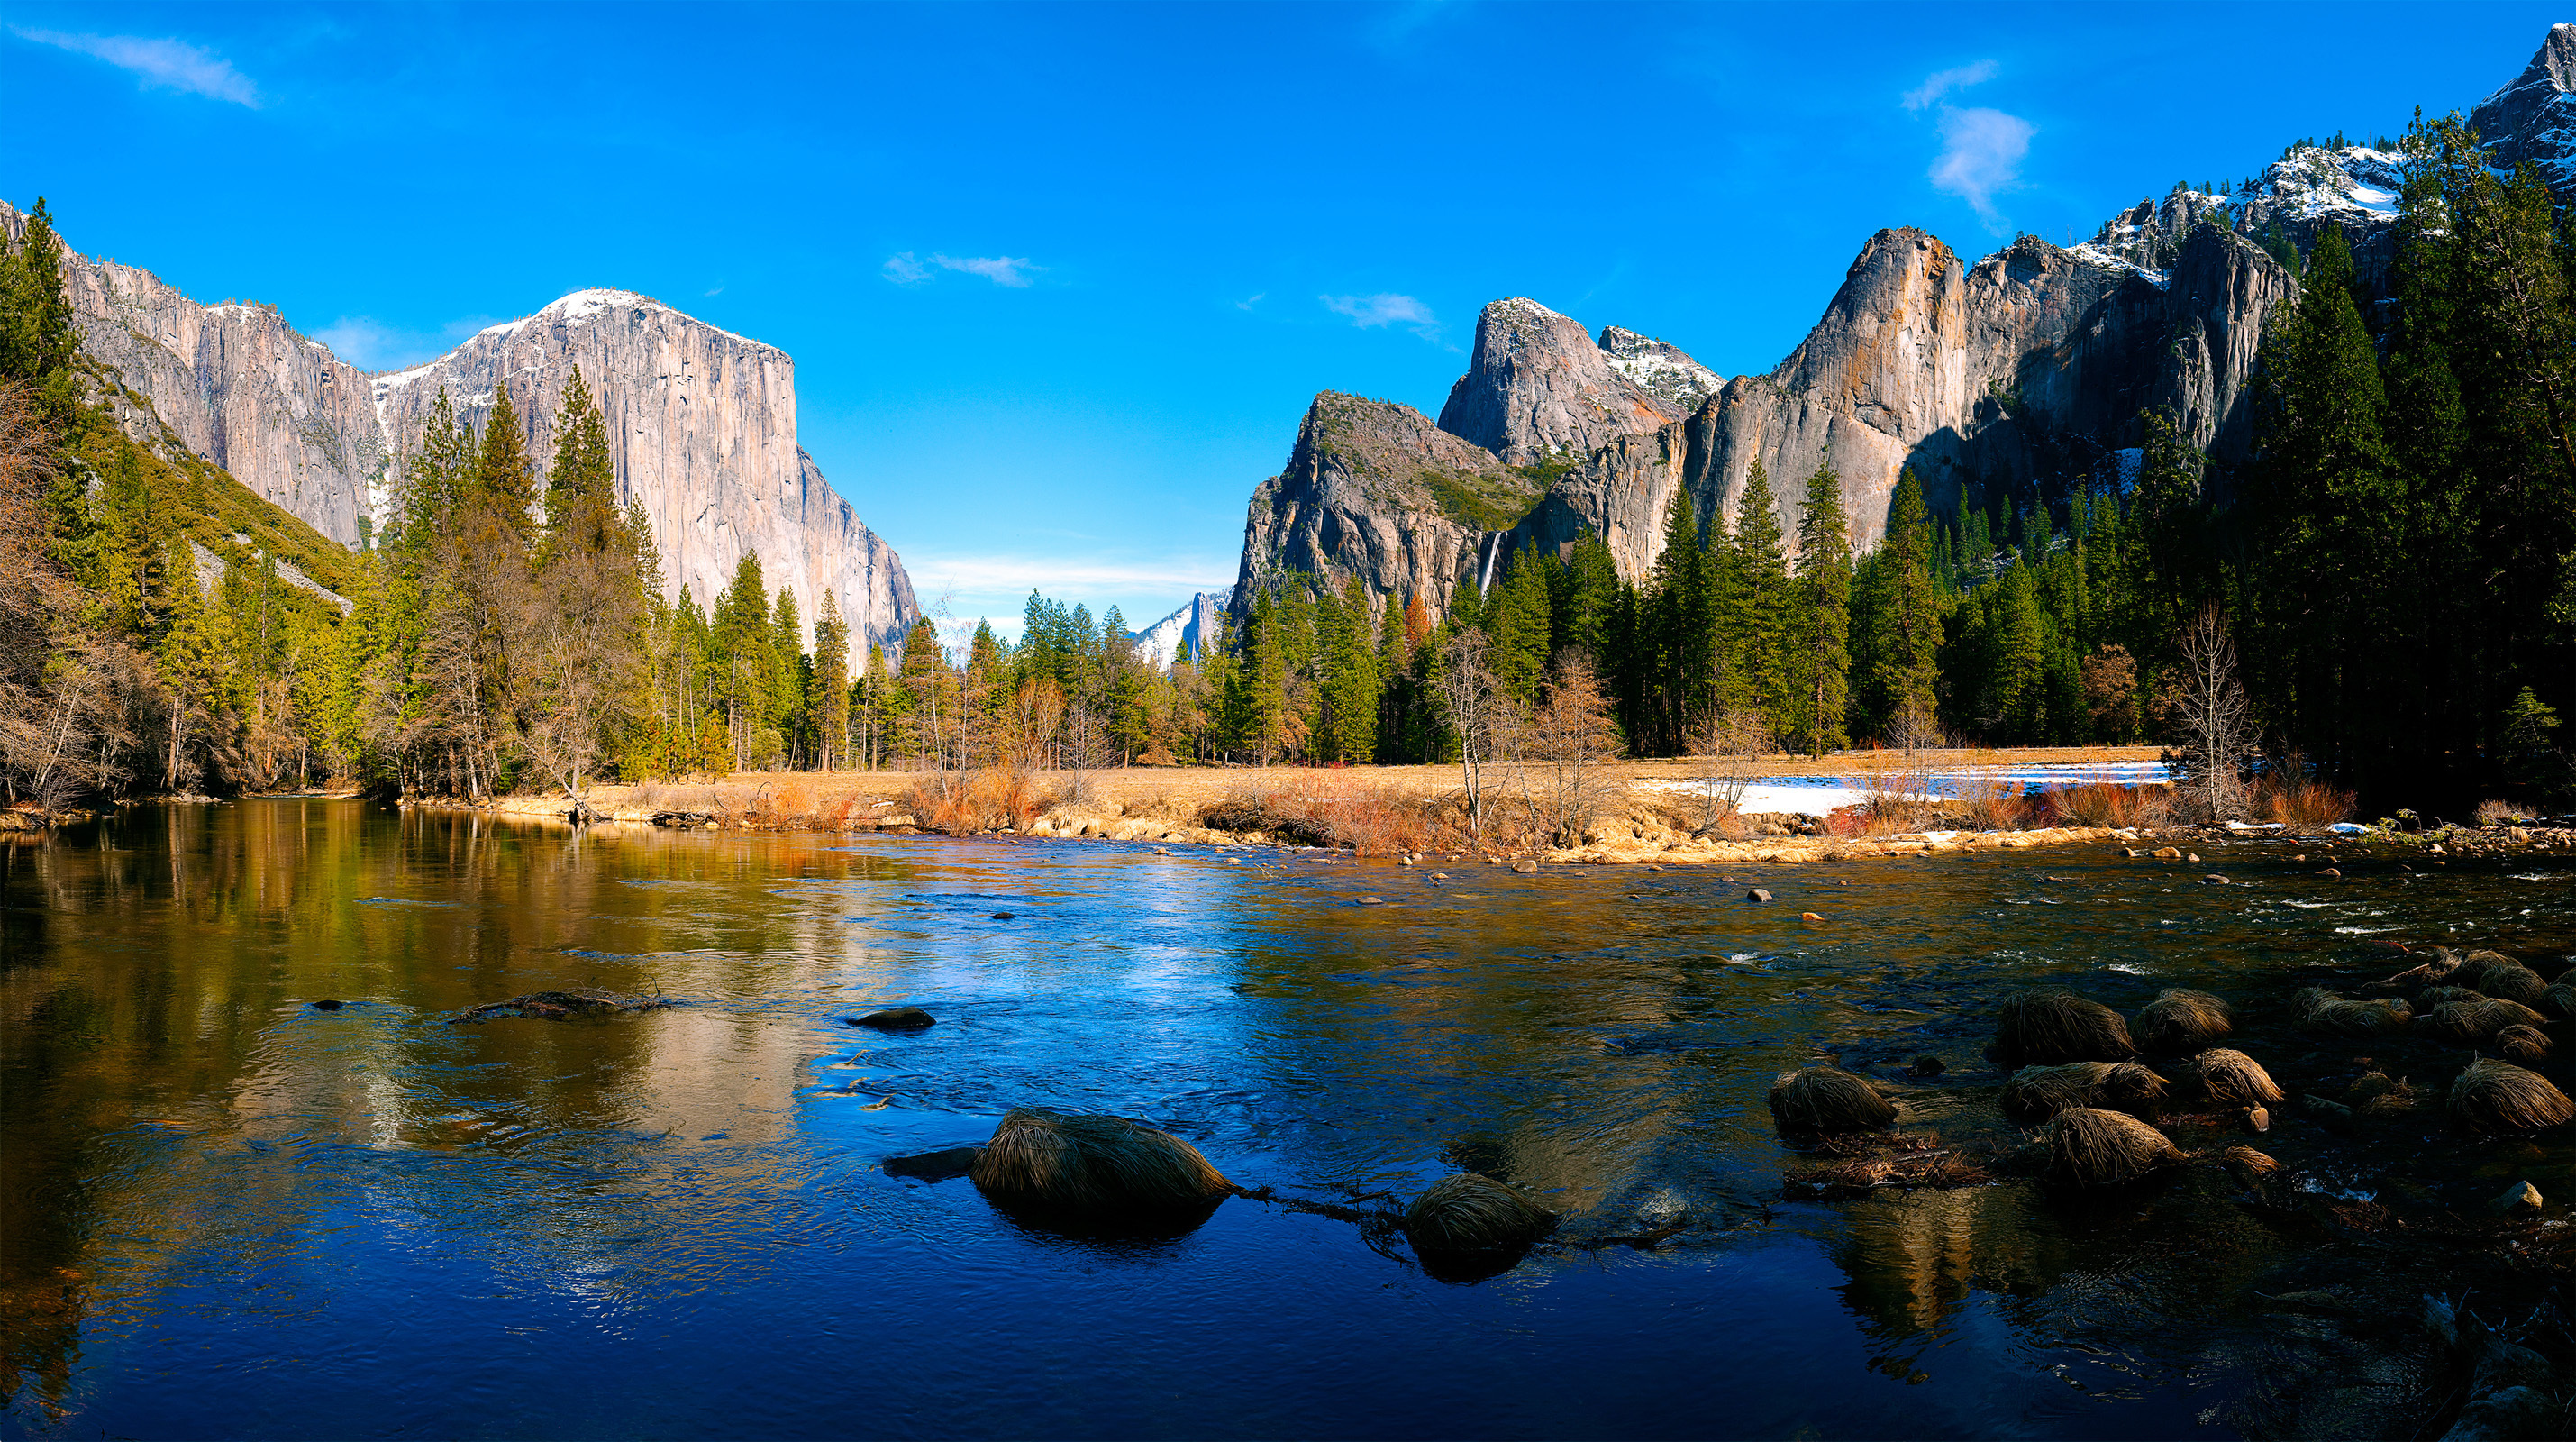 File Name HD wallpaper of Yosemite National park photo of Valley 2859x1600